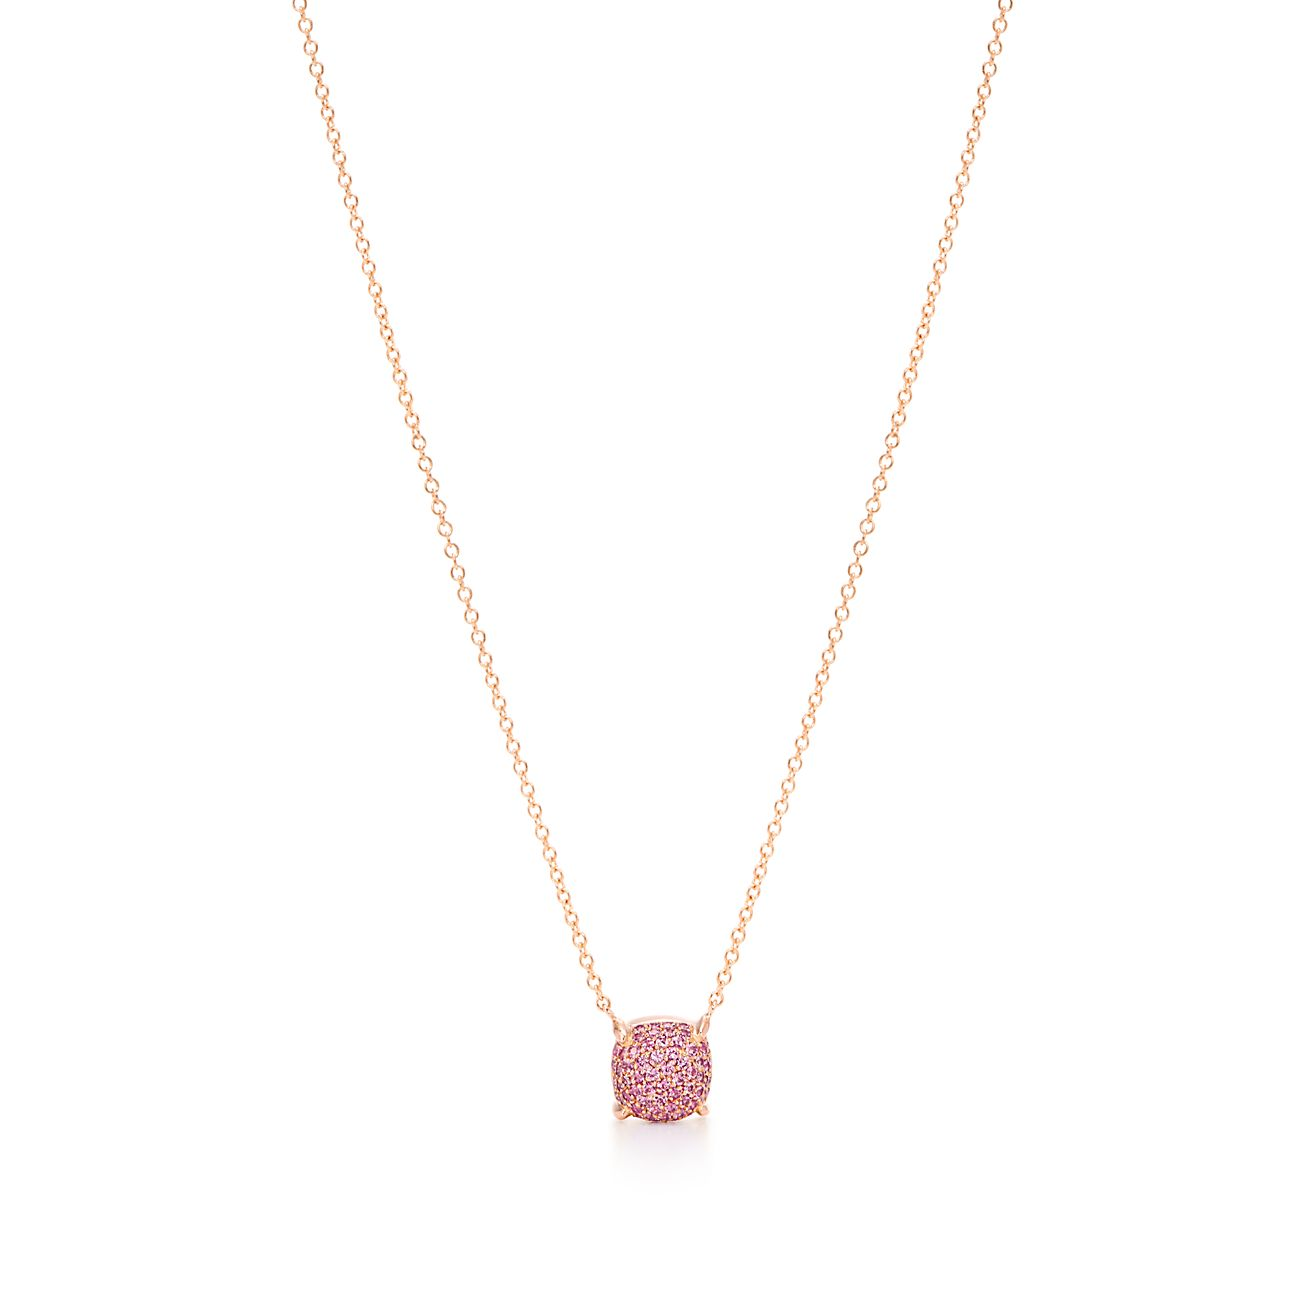 necklace tourmaline long company chicago product of pierce marshall pink onyx de color melody sapphire grisogono